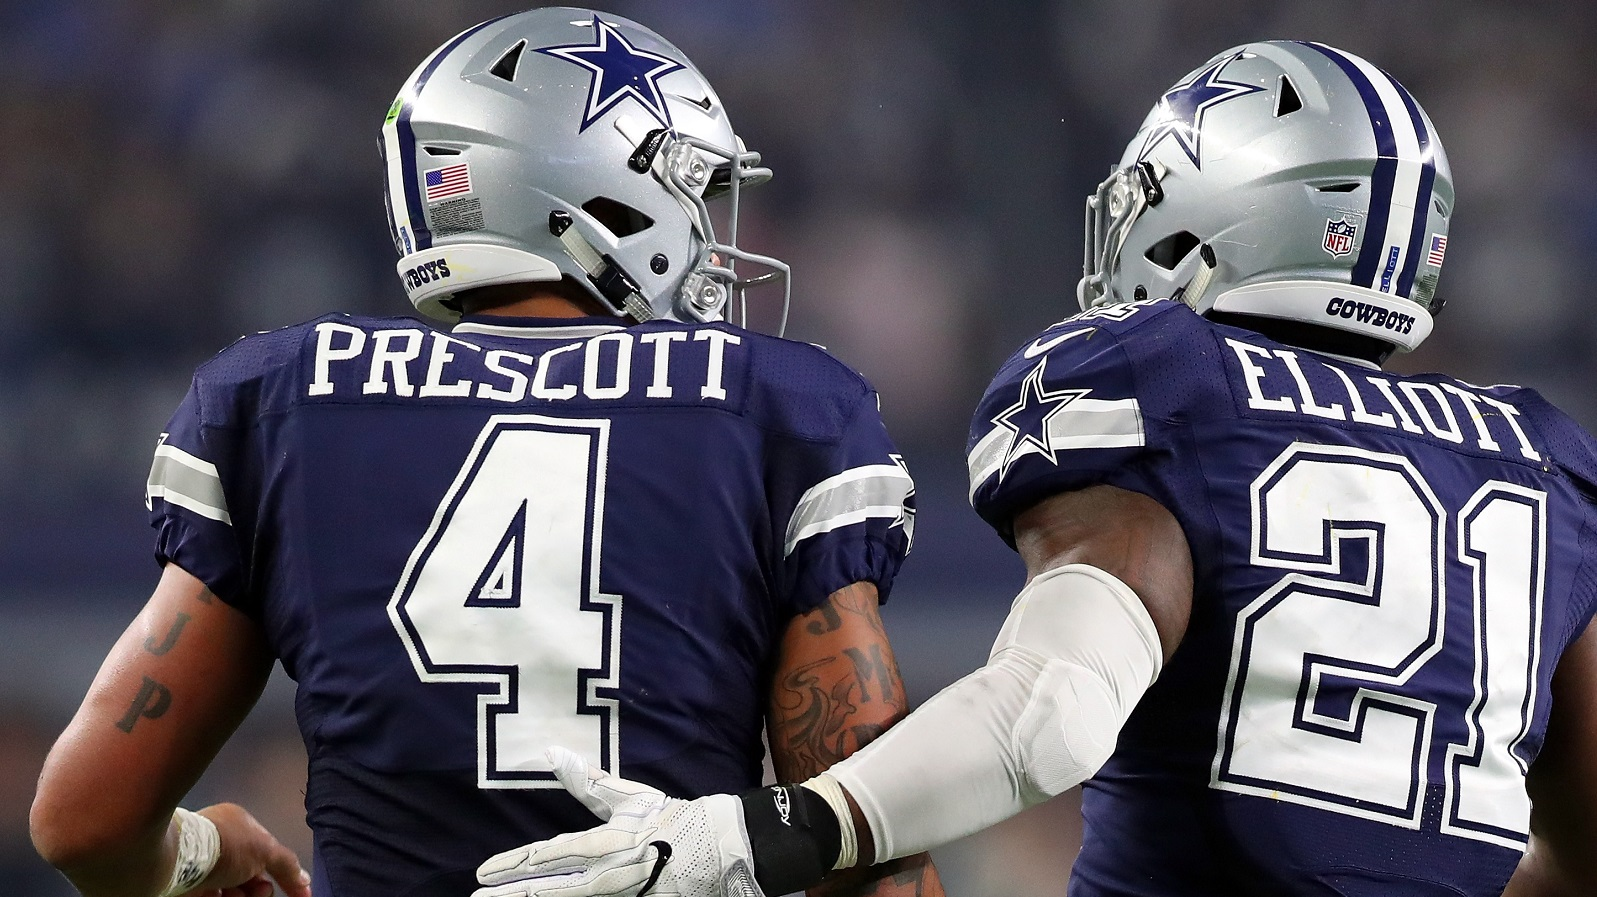 ARLINGTON, TX - NOVEMBER 24:   Dak Prescott #4 of the Dallas Cowboys celebrates with Ezekiel Elliott #21 after scoring a touchdown during the fourth quarter against the Washington Redskins at AT&T Stadium on November 24, 2016 in Arlington, Texas.  (Photo by Tom Pennington/Getty Images)